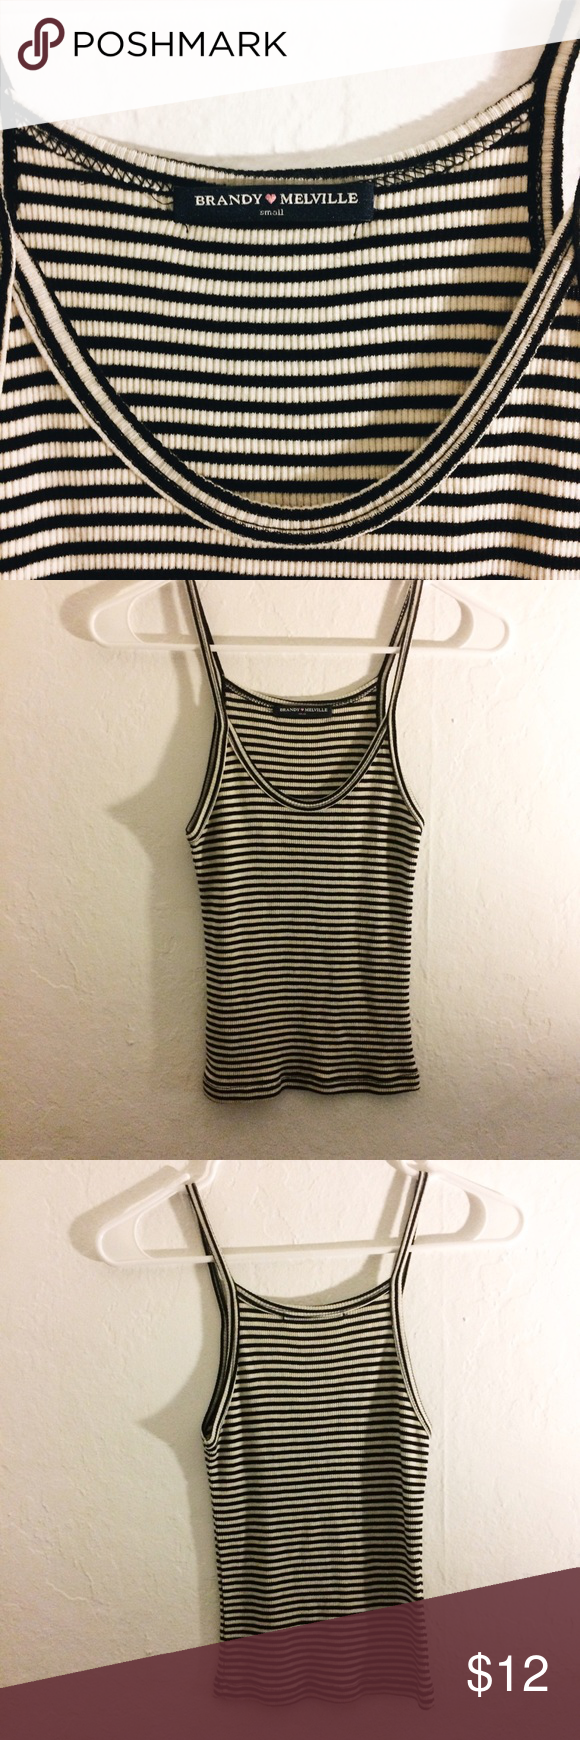 Brandy Melville Tank Black and white stripes are the way to go. This tank has never been worn and it is in perfect condition! Let me know if you have any questions :) Brandy Melville Tops Tank Tops